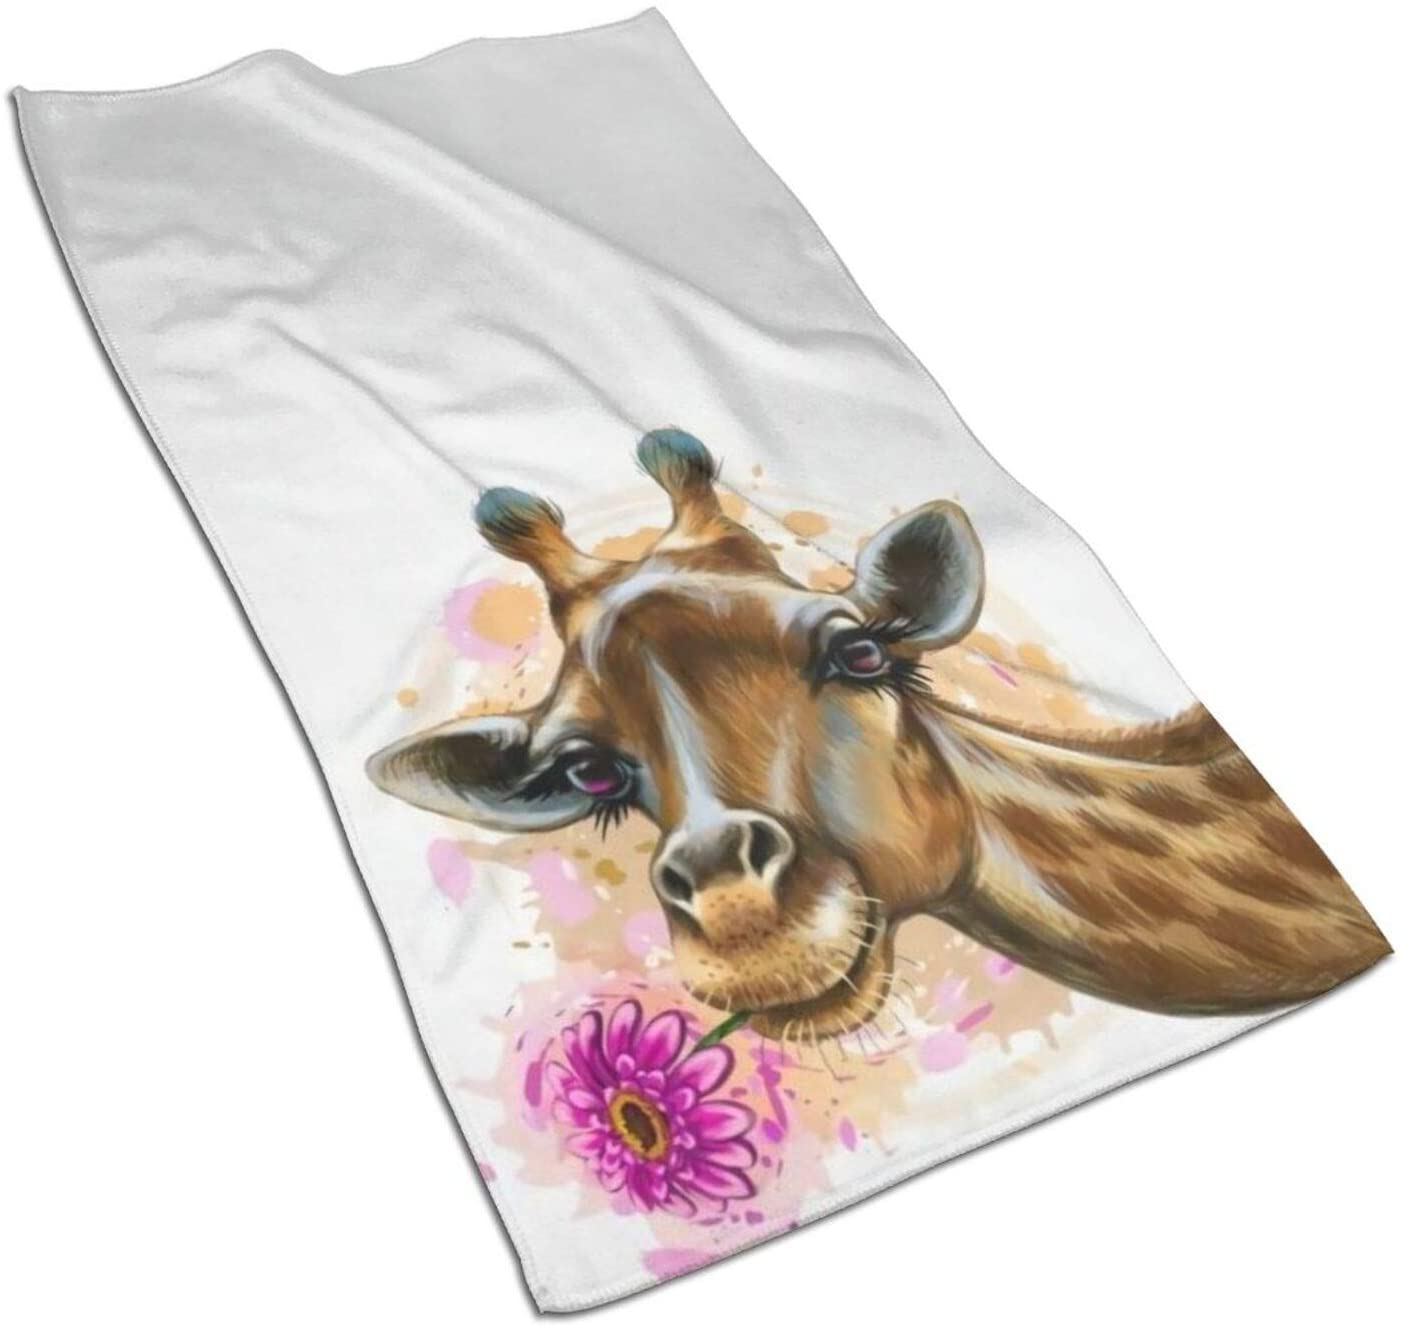 antcreptson Wamika Cute Giraffe with Daisy Flowers 15.727.5 Inch Ultra Absorbent Quick Dry Soft Towels for Bathroom, Hotel and Spa Quality